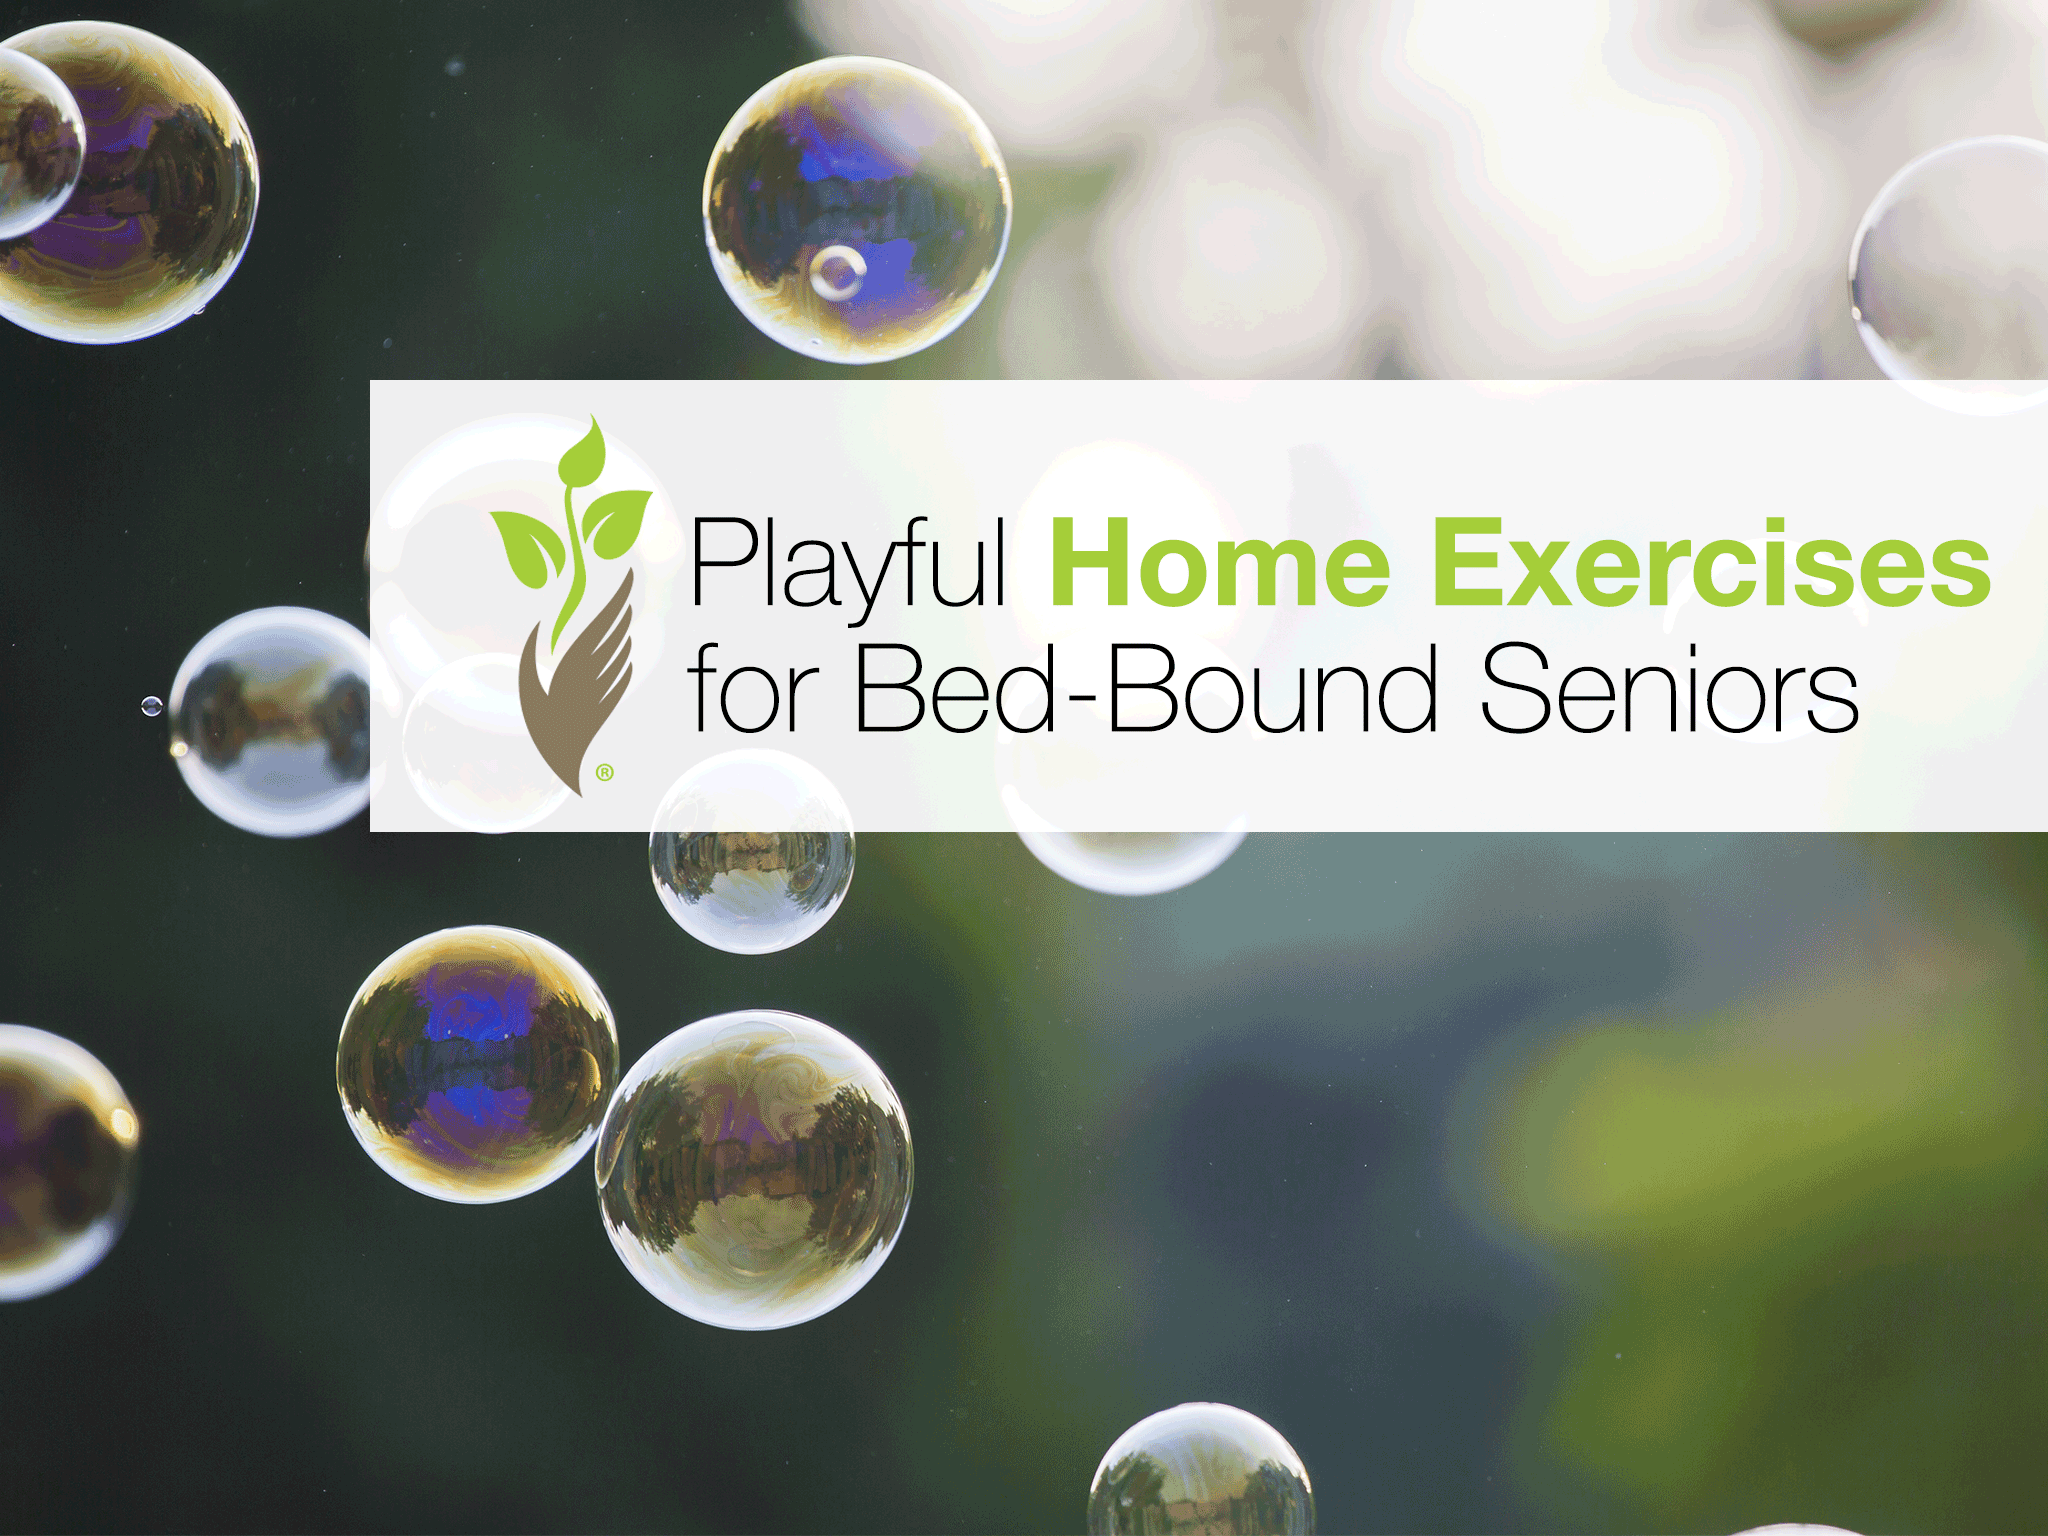 Playful Home Exercises for Bed-Bound Seniors